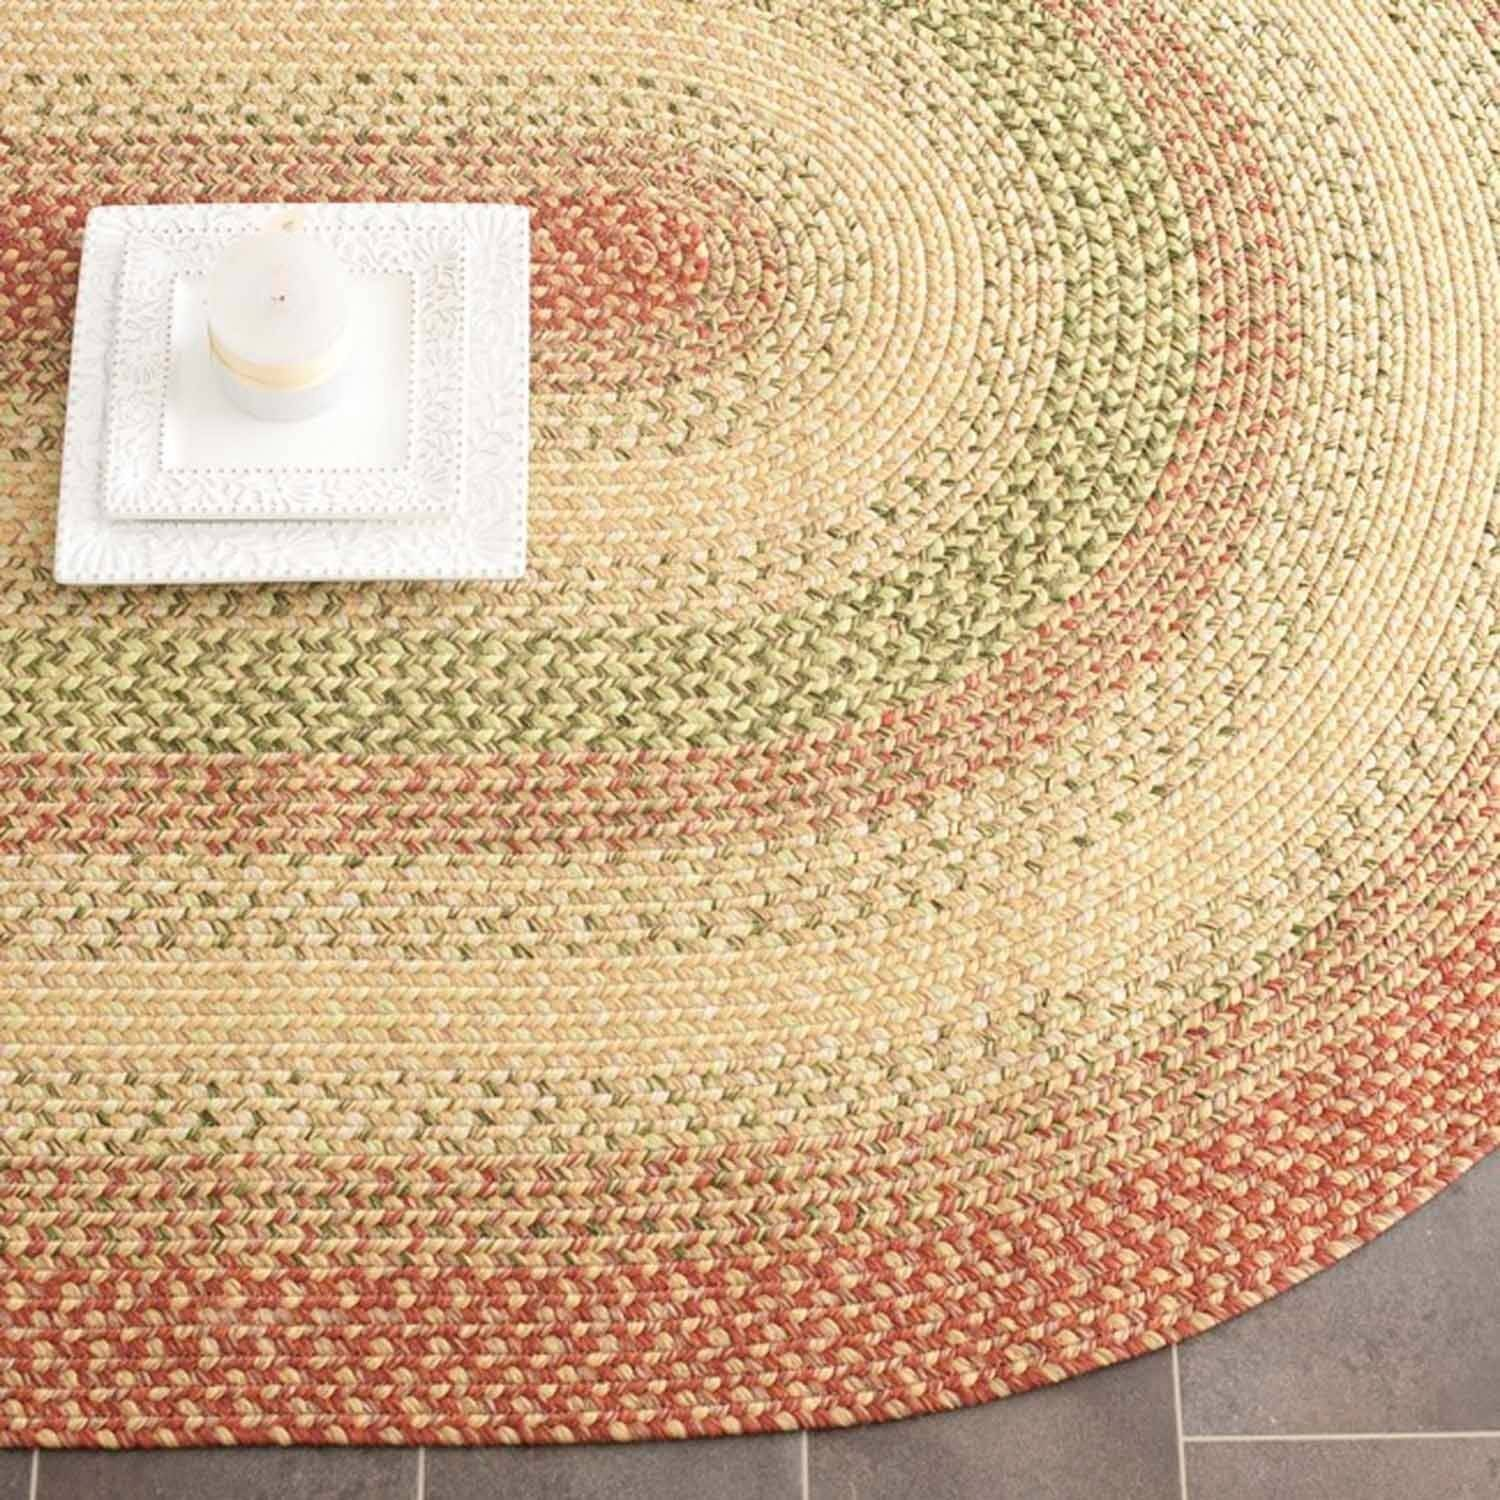 Safavieh Braided Matthew Polypropylene Area Rug, Rust/Multi